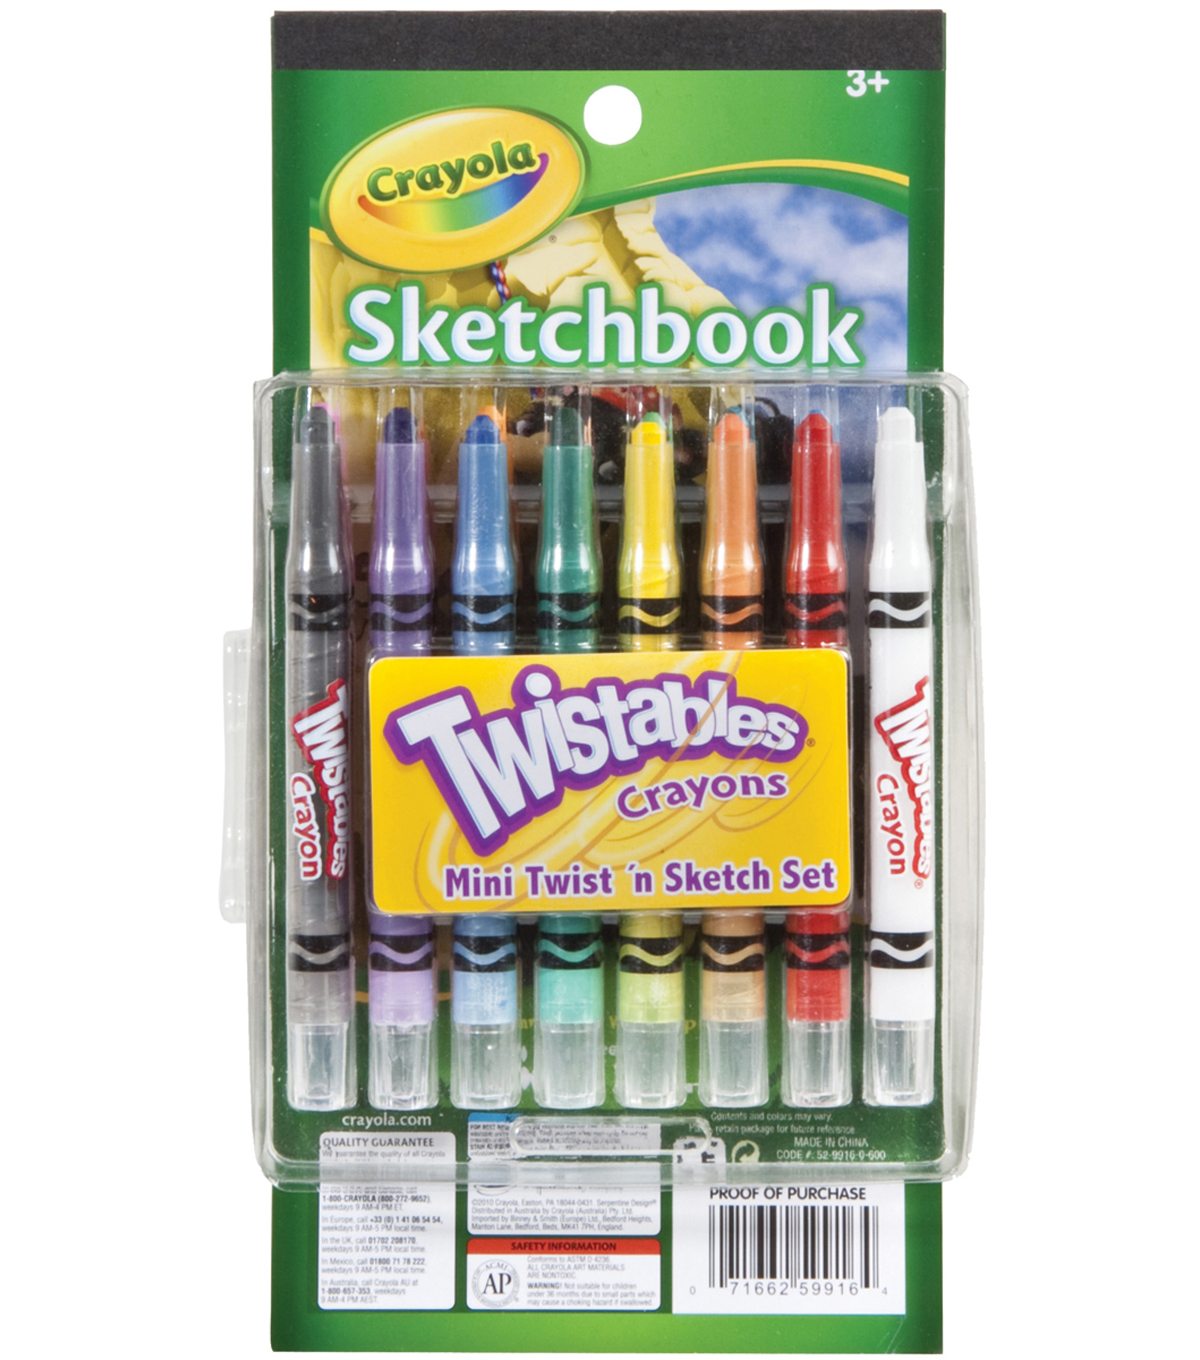 Crayola Twistable Mini Twist \u0027n Sketch Set